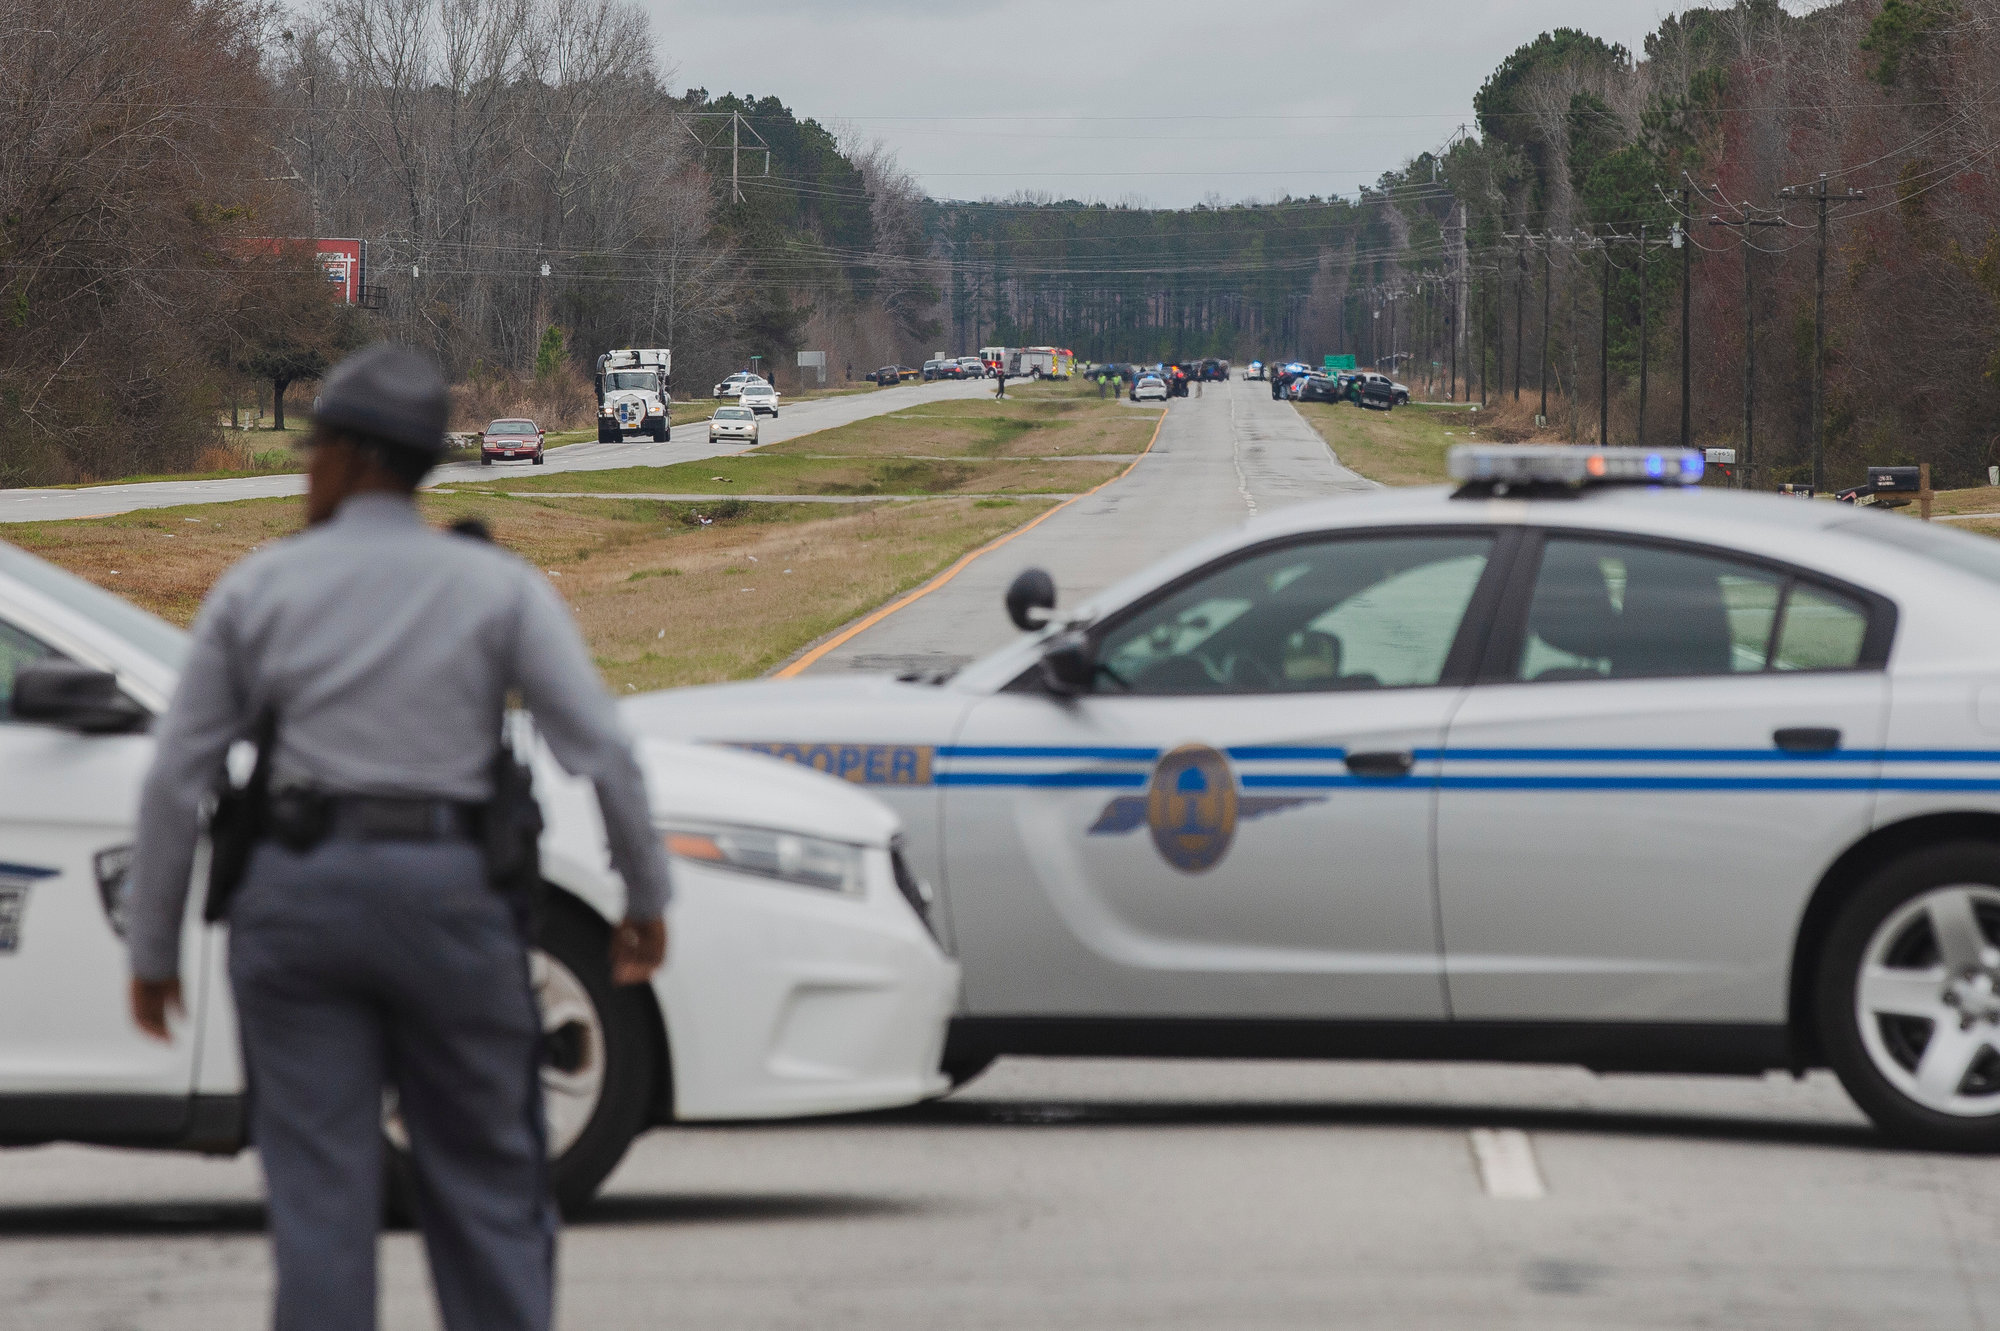 U.S. 521 is seen blocked at Four Bridges Road as a heavy law enforcement response can be seen in the distance.